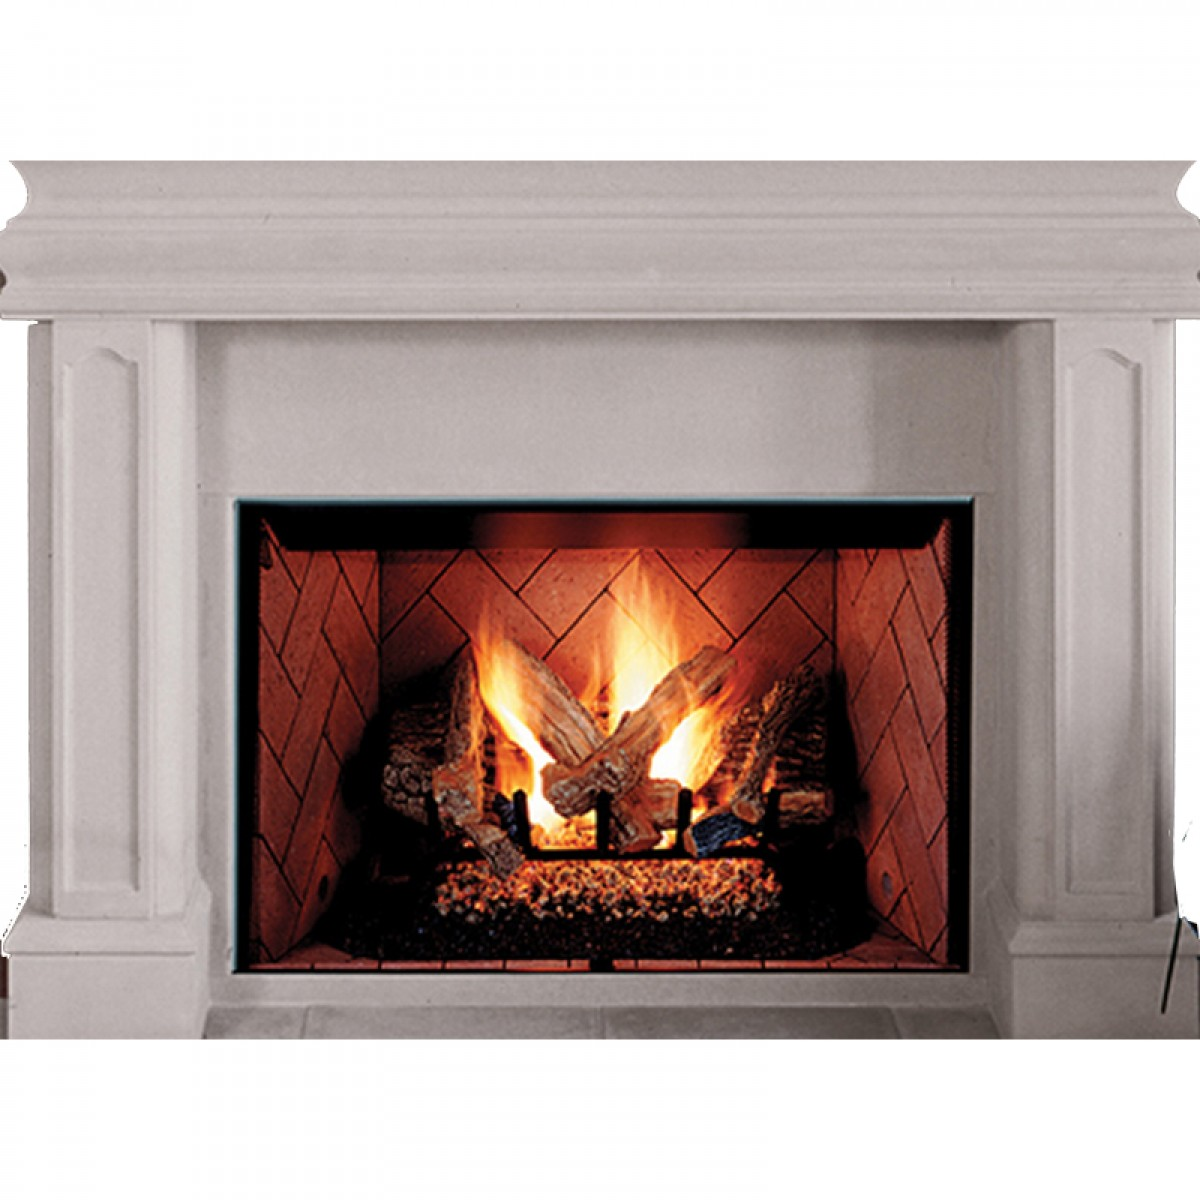 ihp superior brt4500 b vent gas fireplace